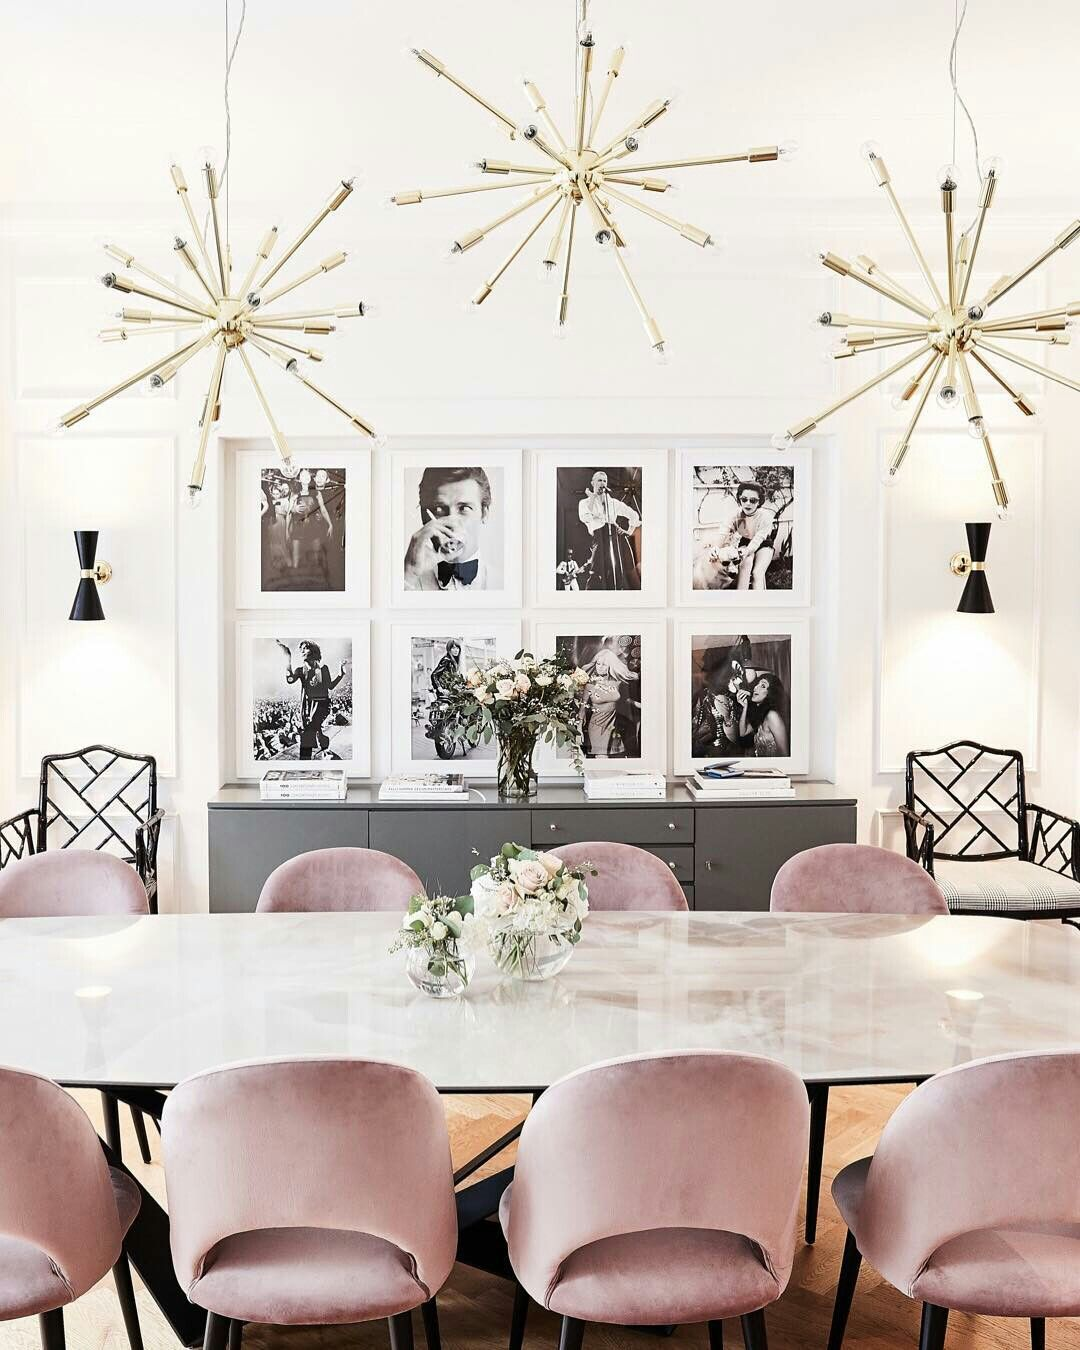 The Velvet Pink Accent Chairs The Black And White Portraits The